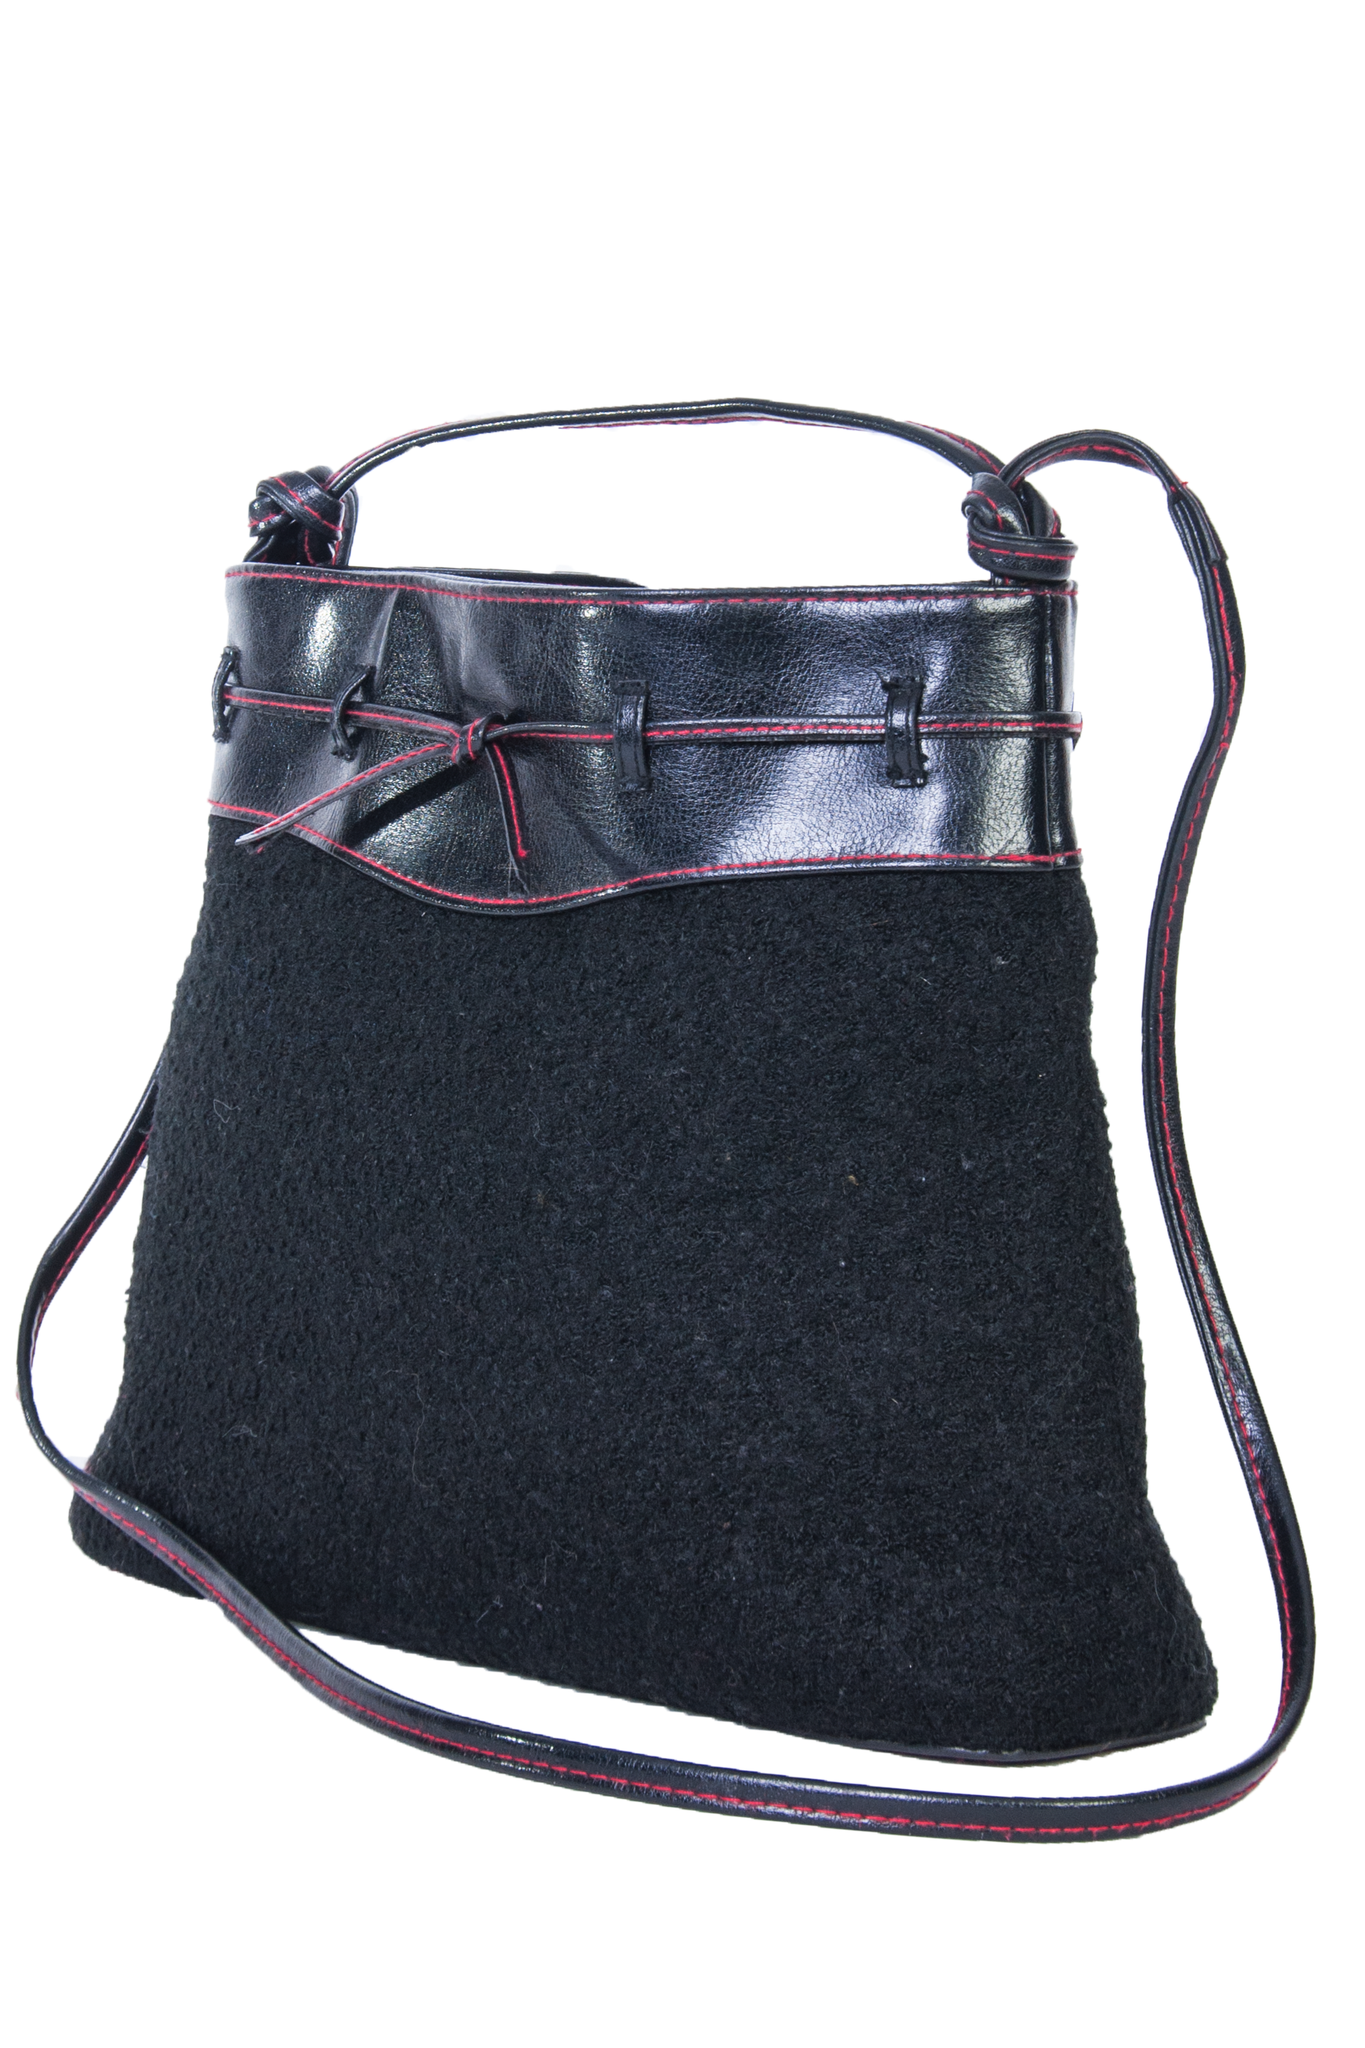 wooly bucket bag with leather trim